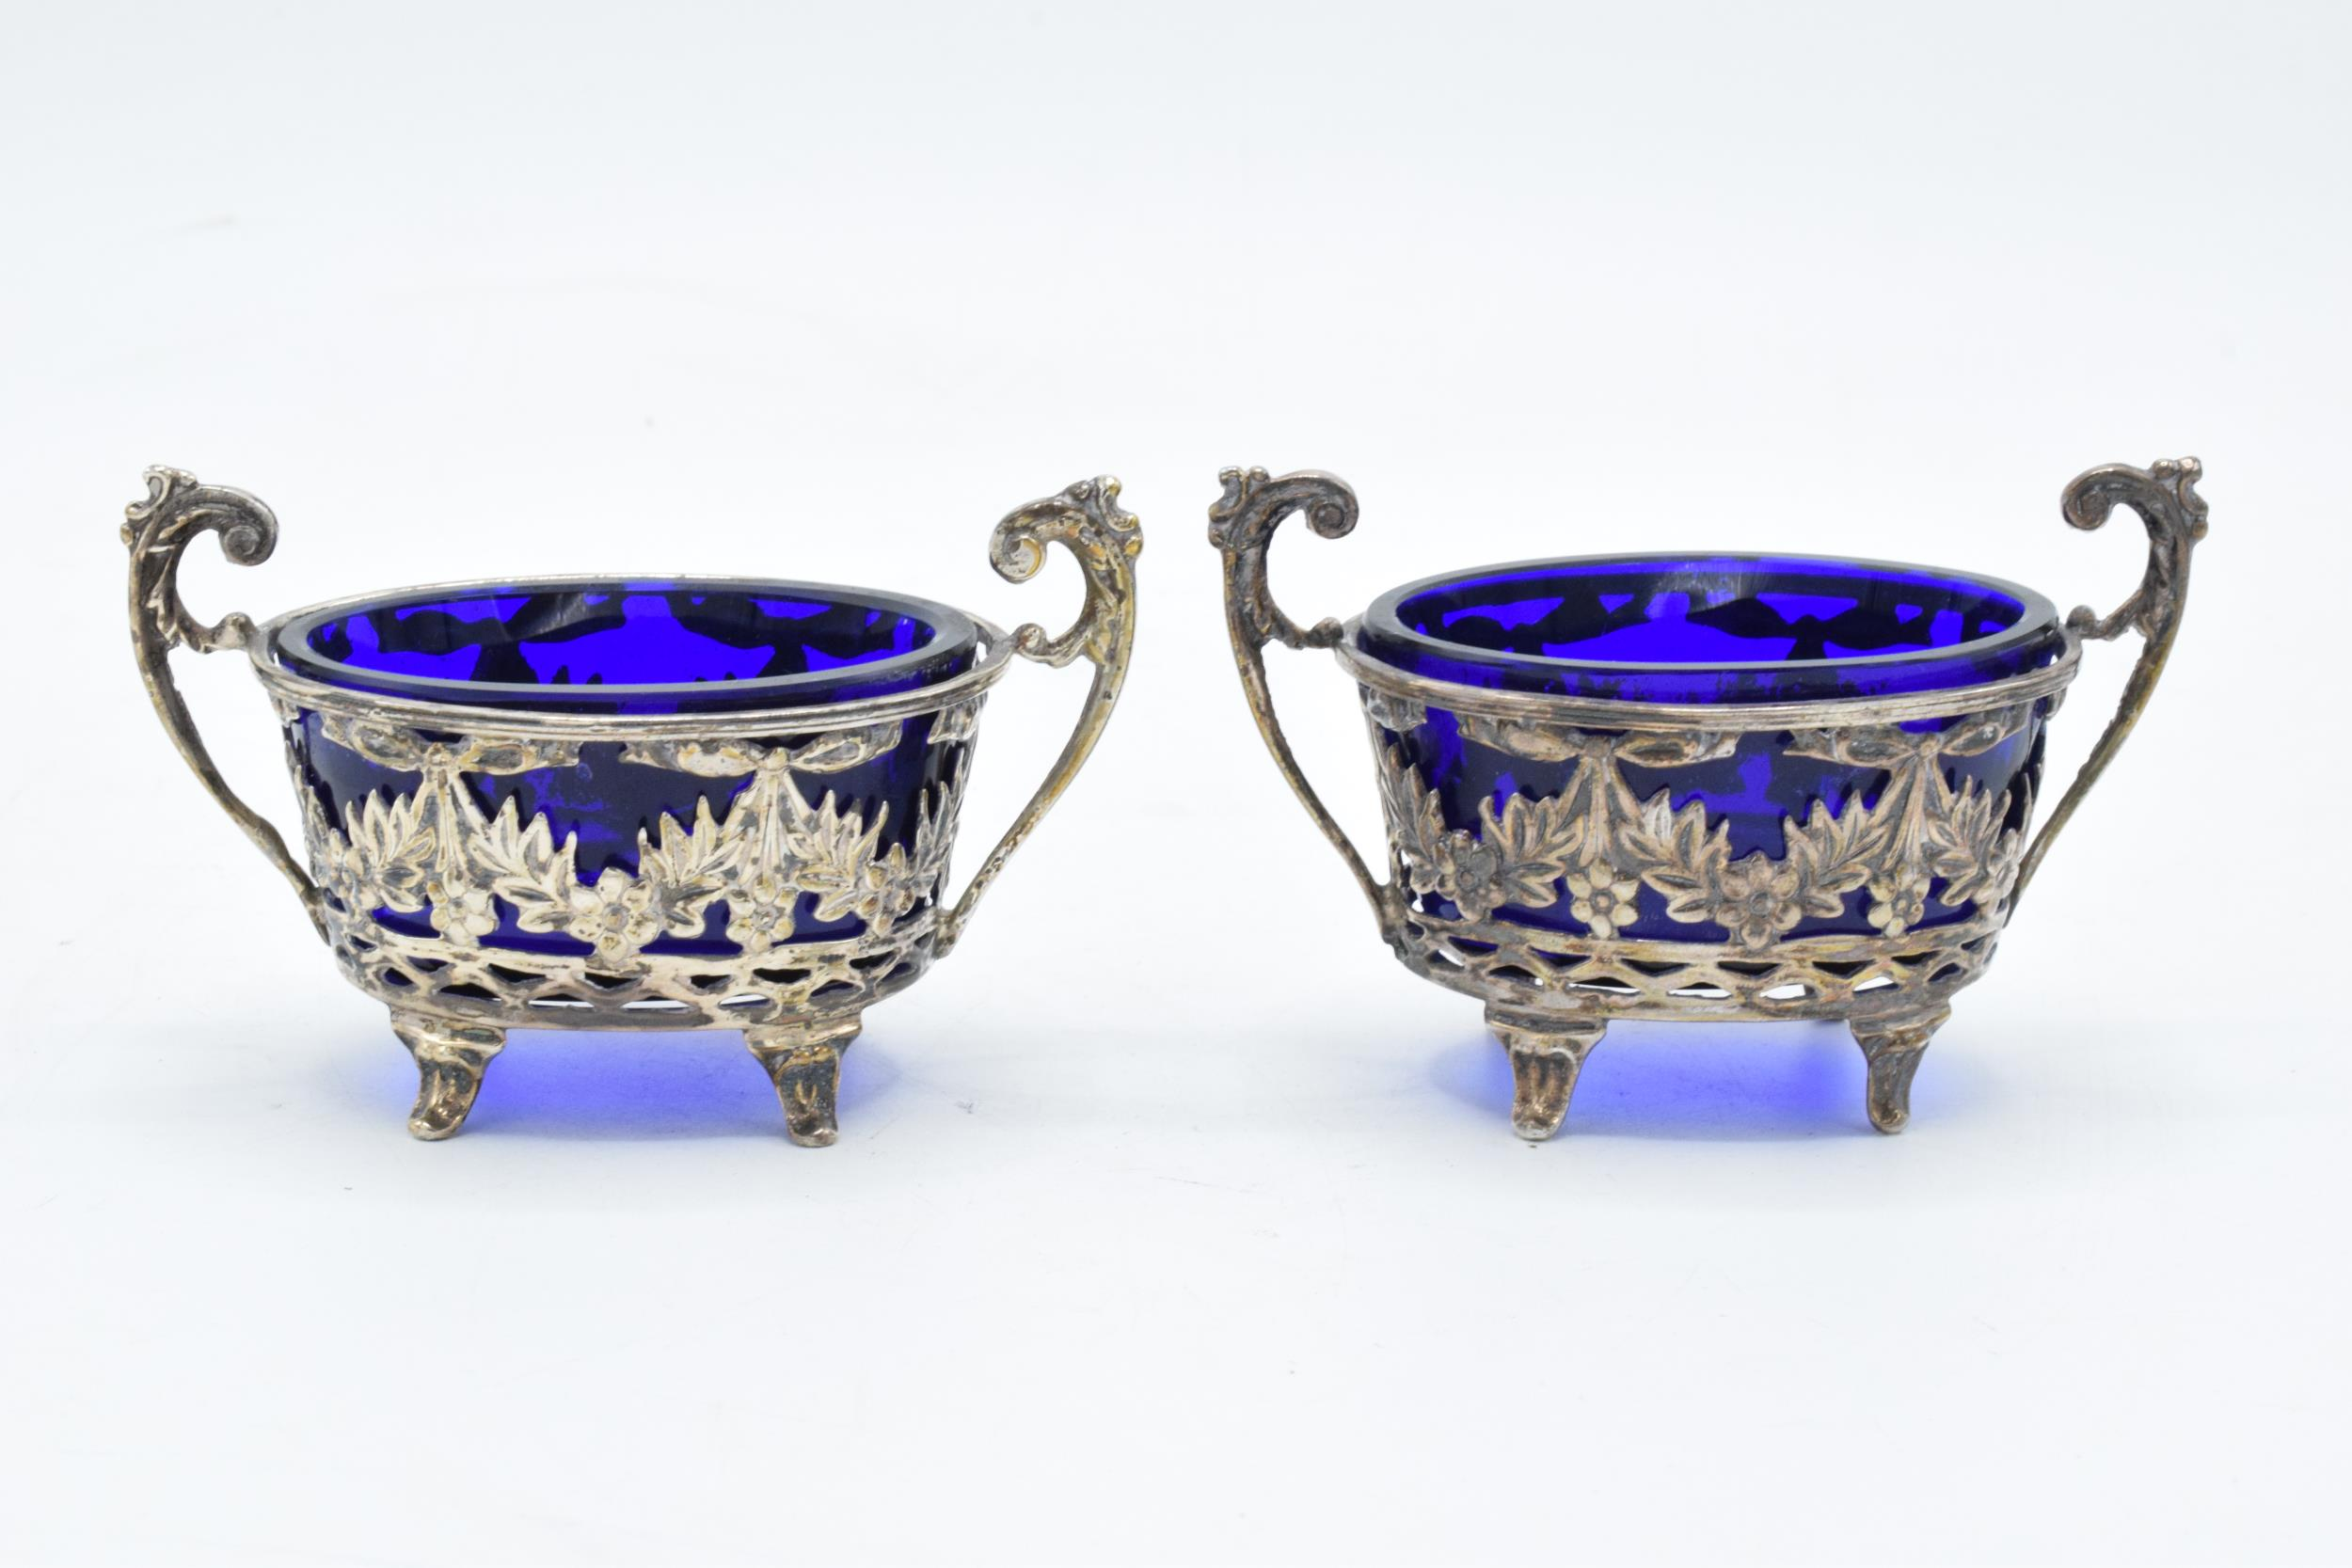 A pair of silver table salts with associated blue glass liners (2). Chester 1894. 101.3 grams of - Image 2 of 6